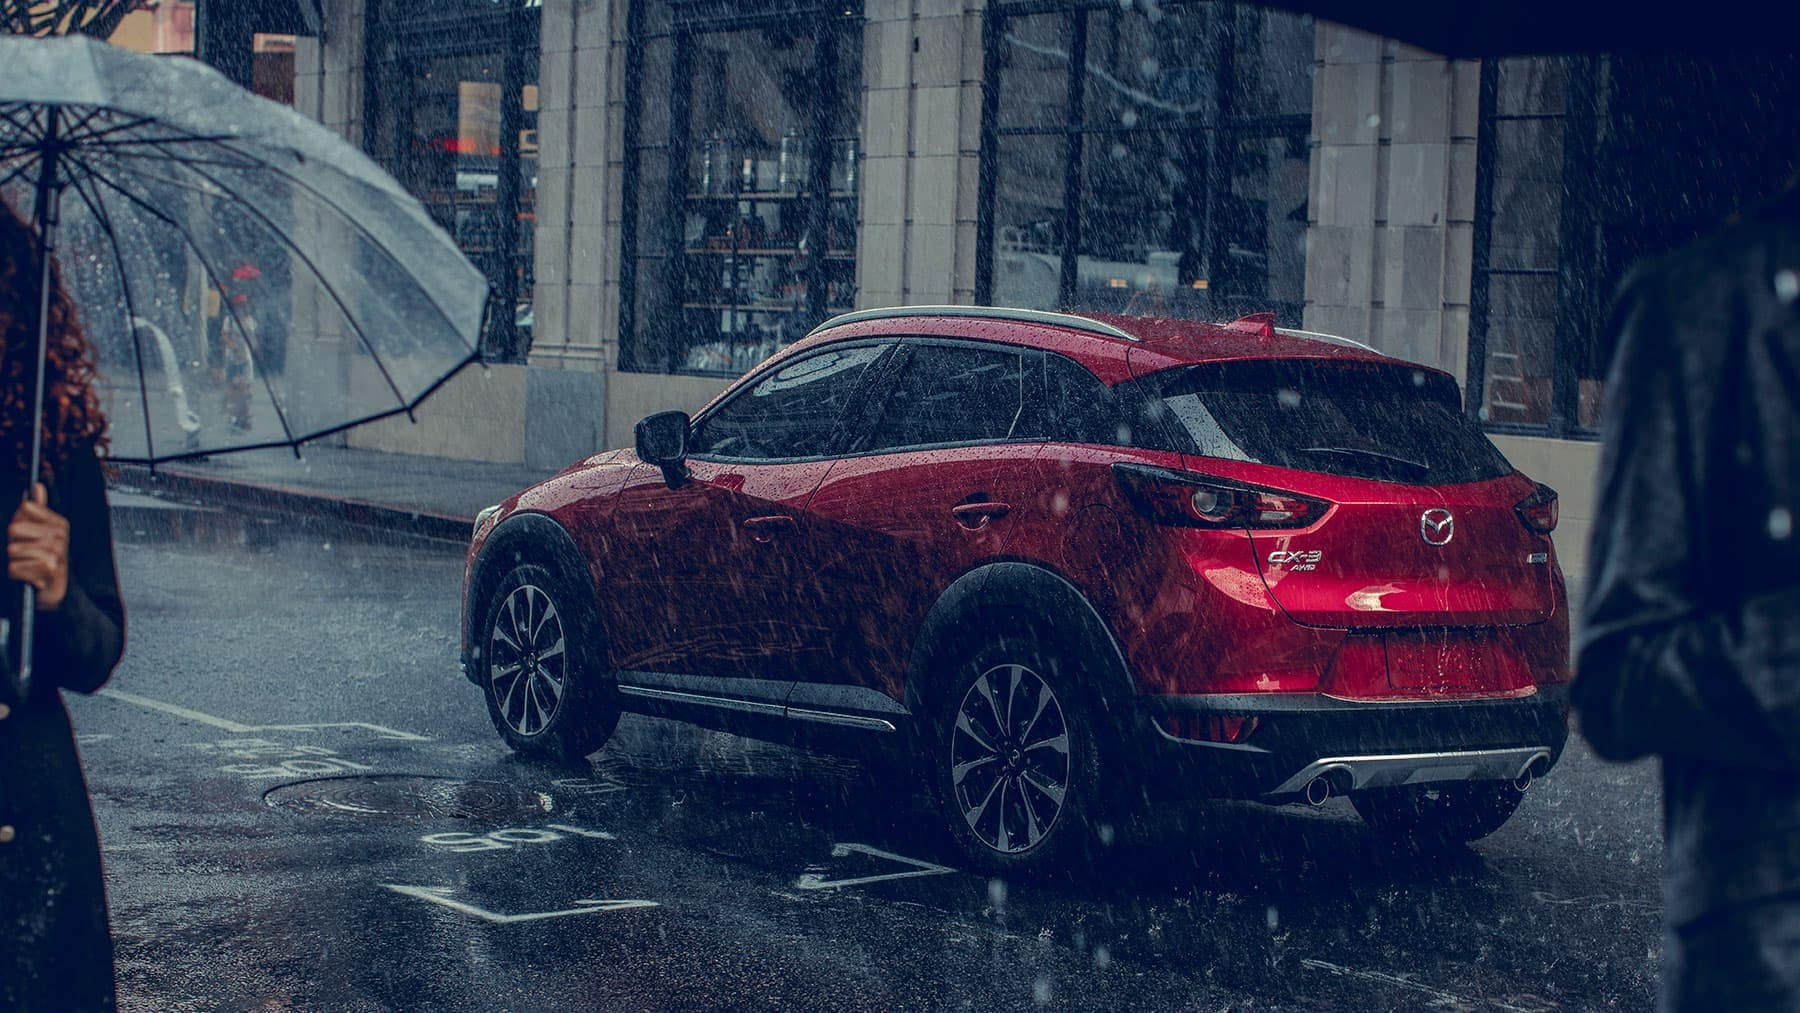 2019 Mazda CX-3 driving in rain